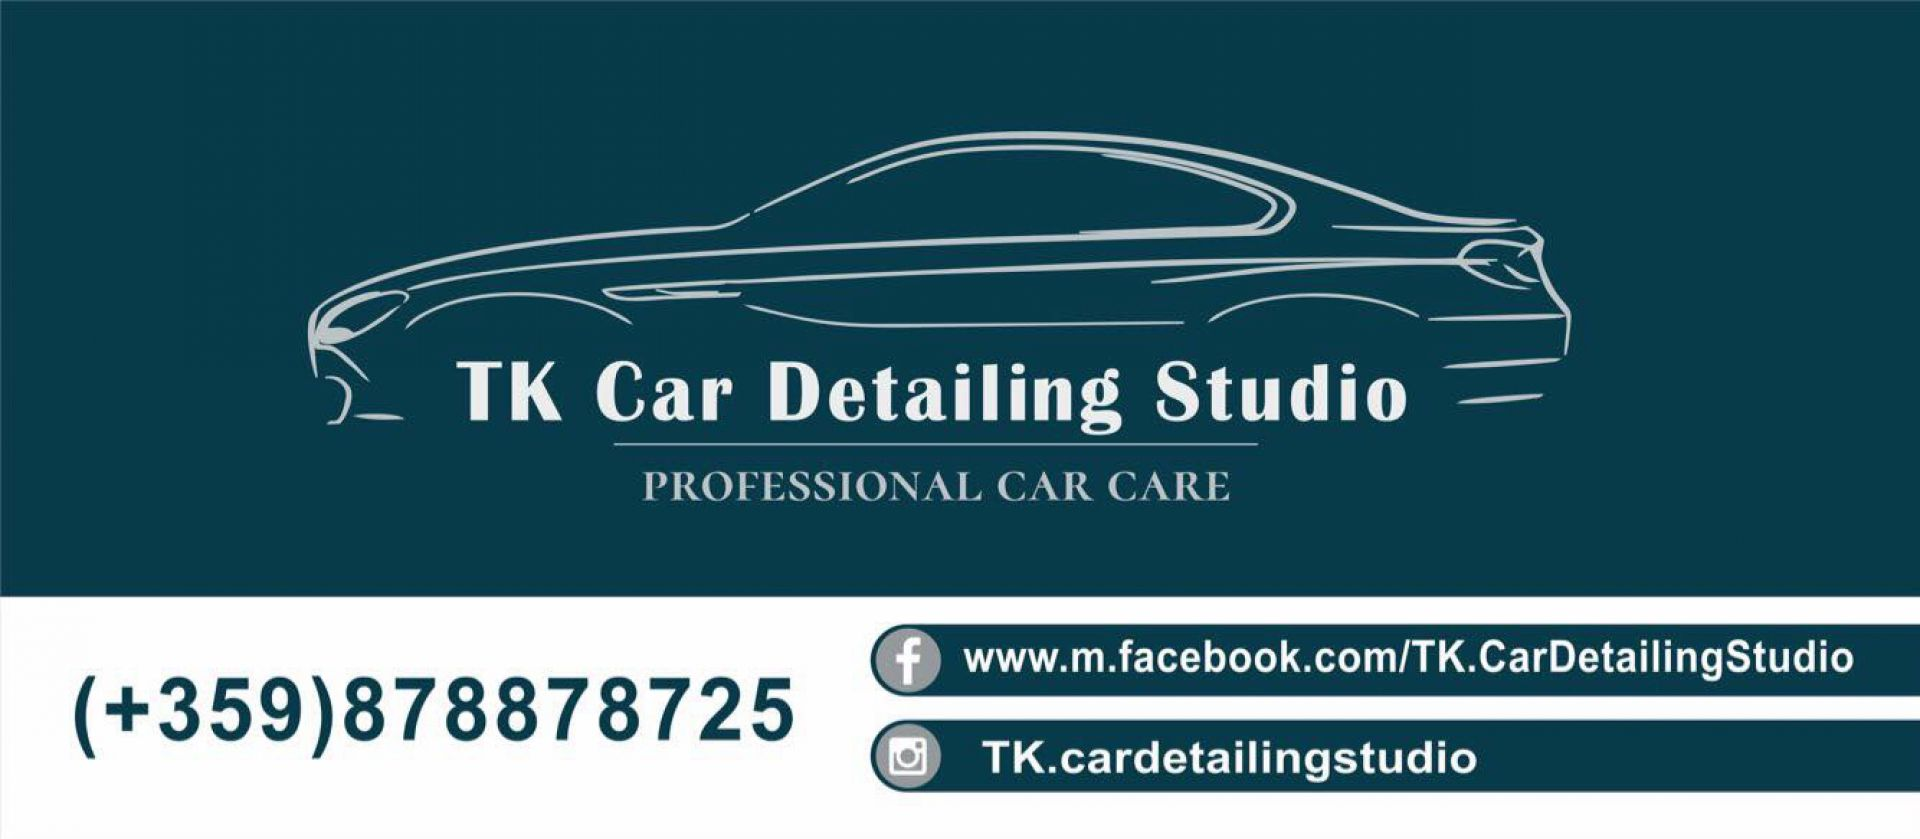 TK Car Detailing Studio